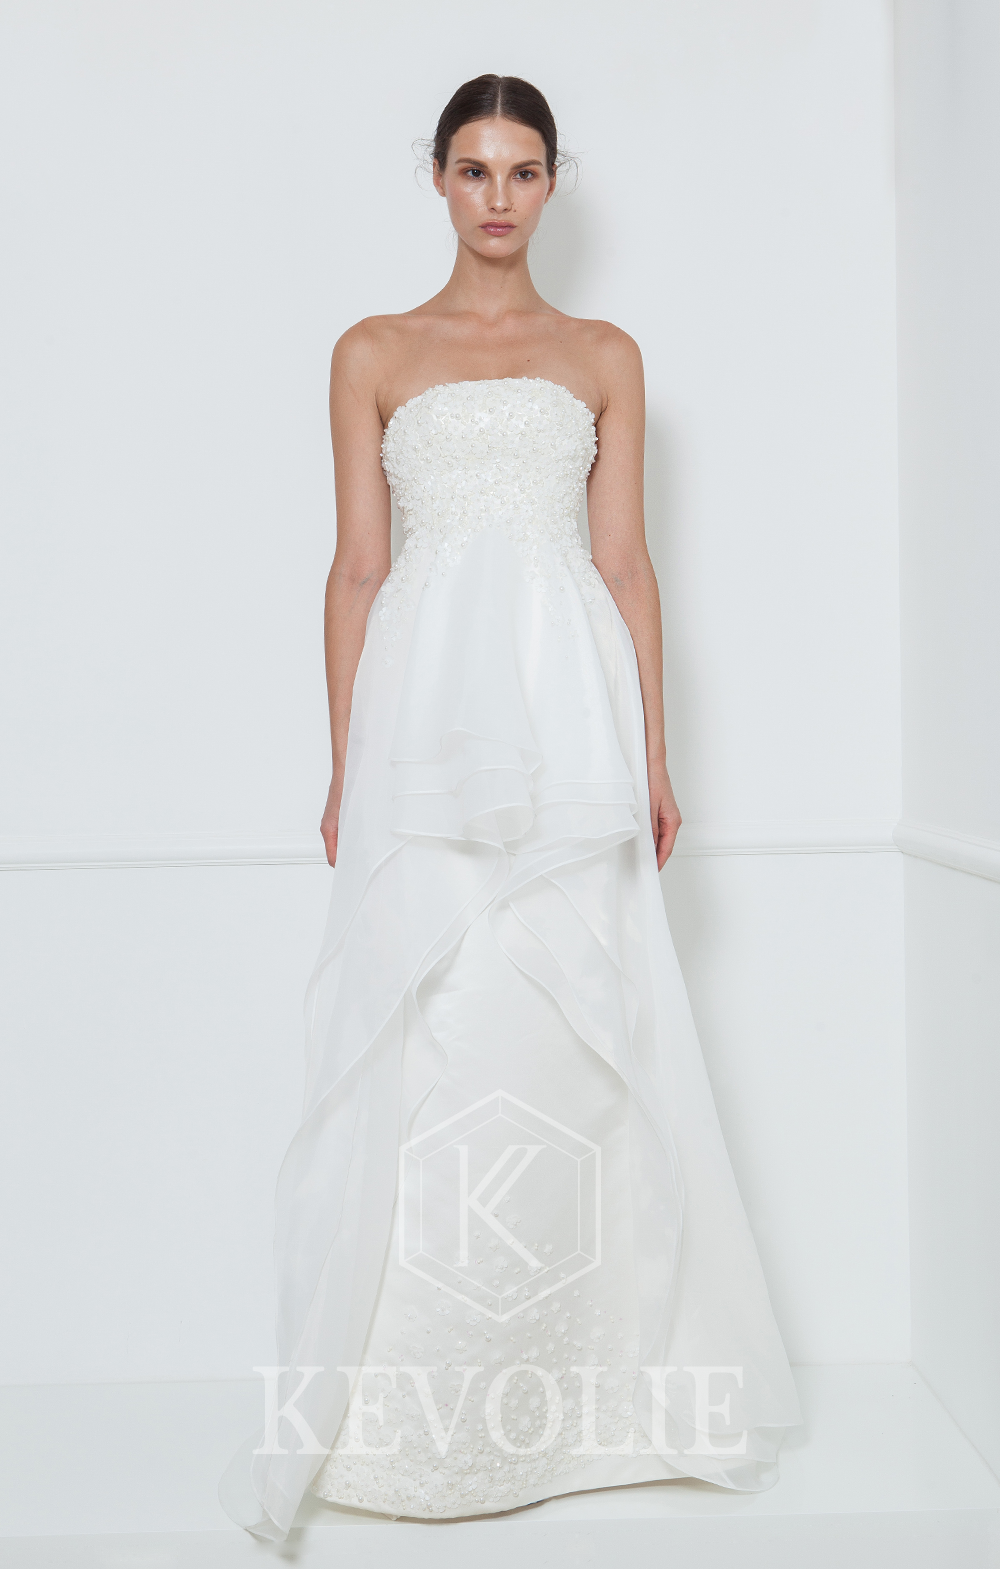 BRIDAL COLLECTION 2015-LOOK 18